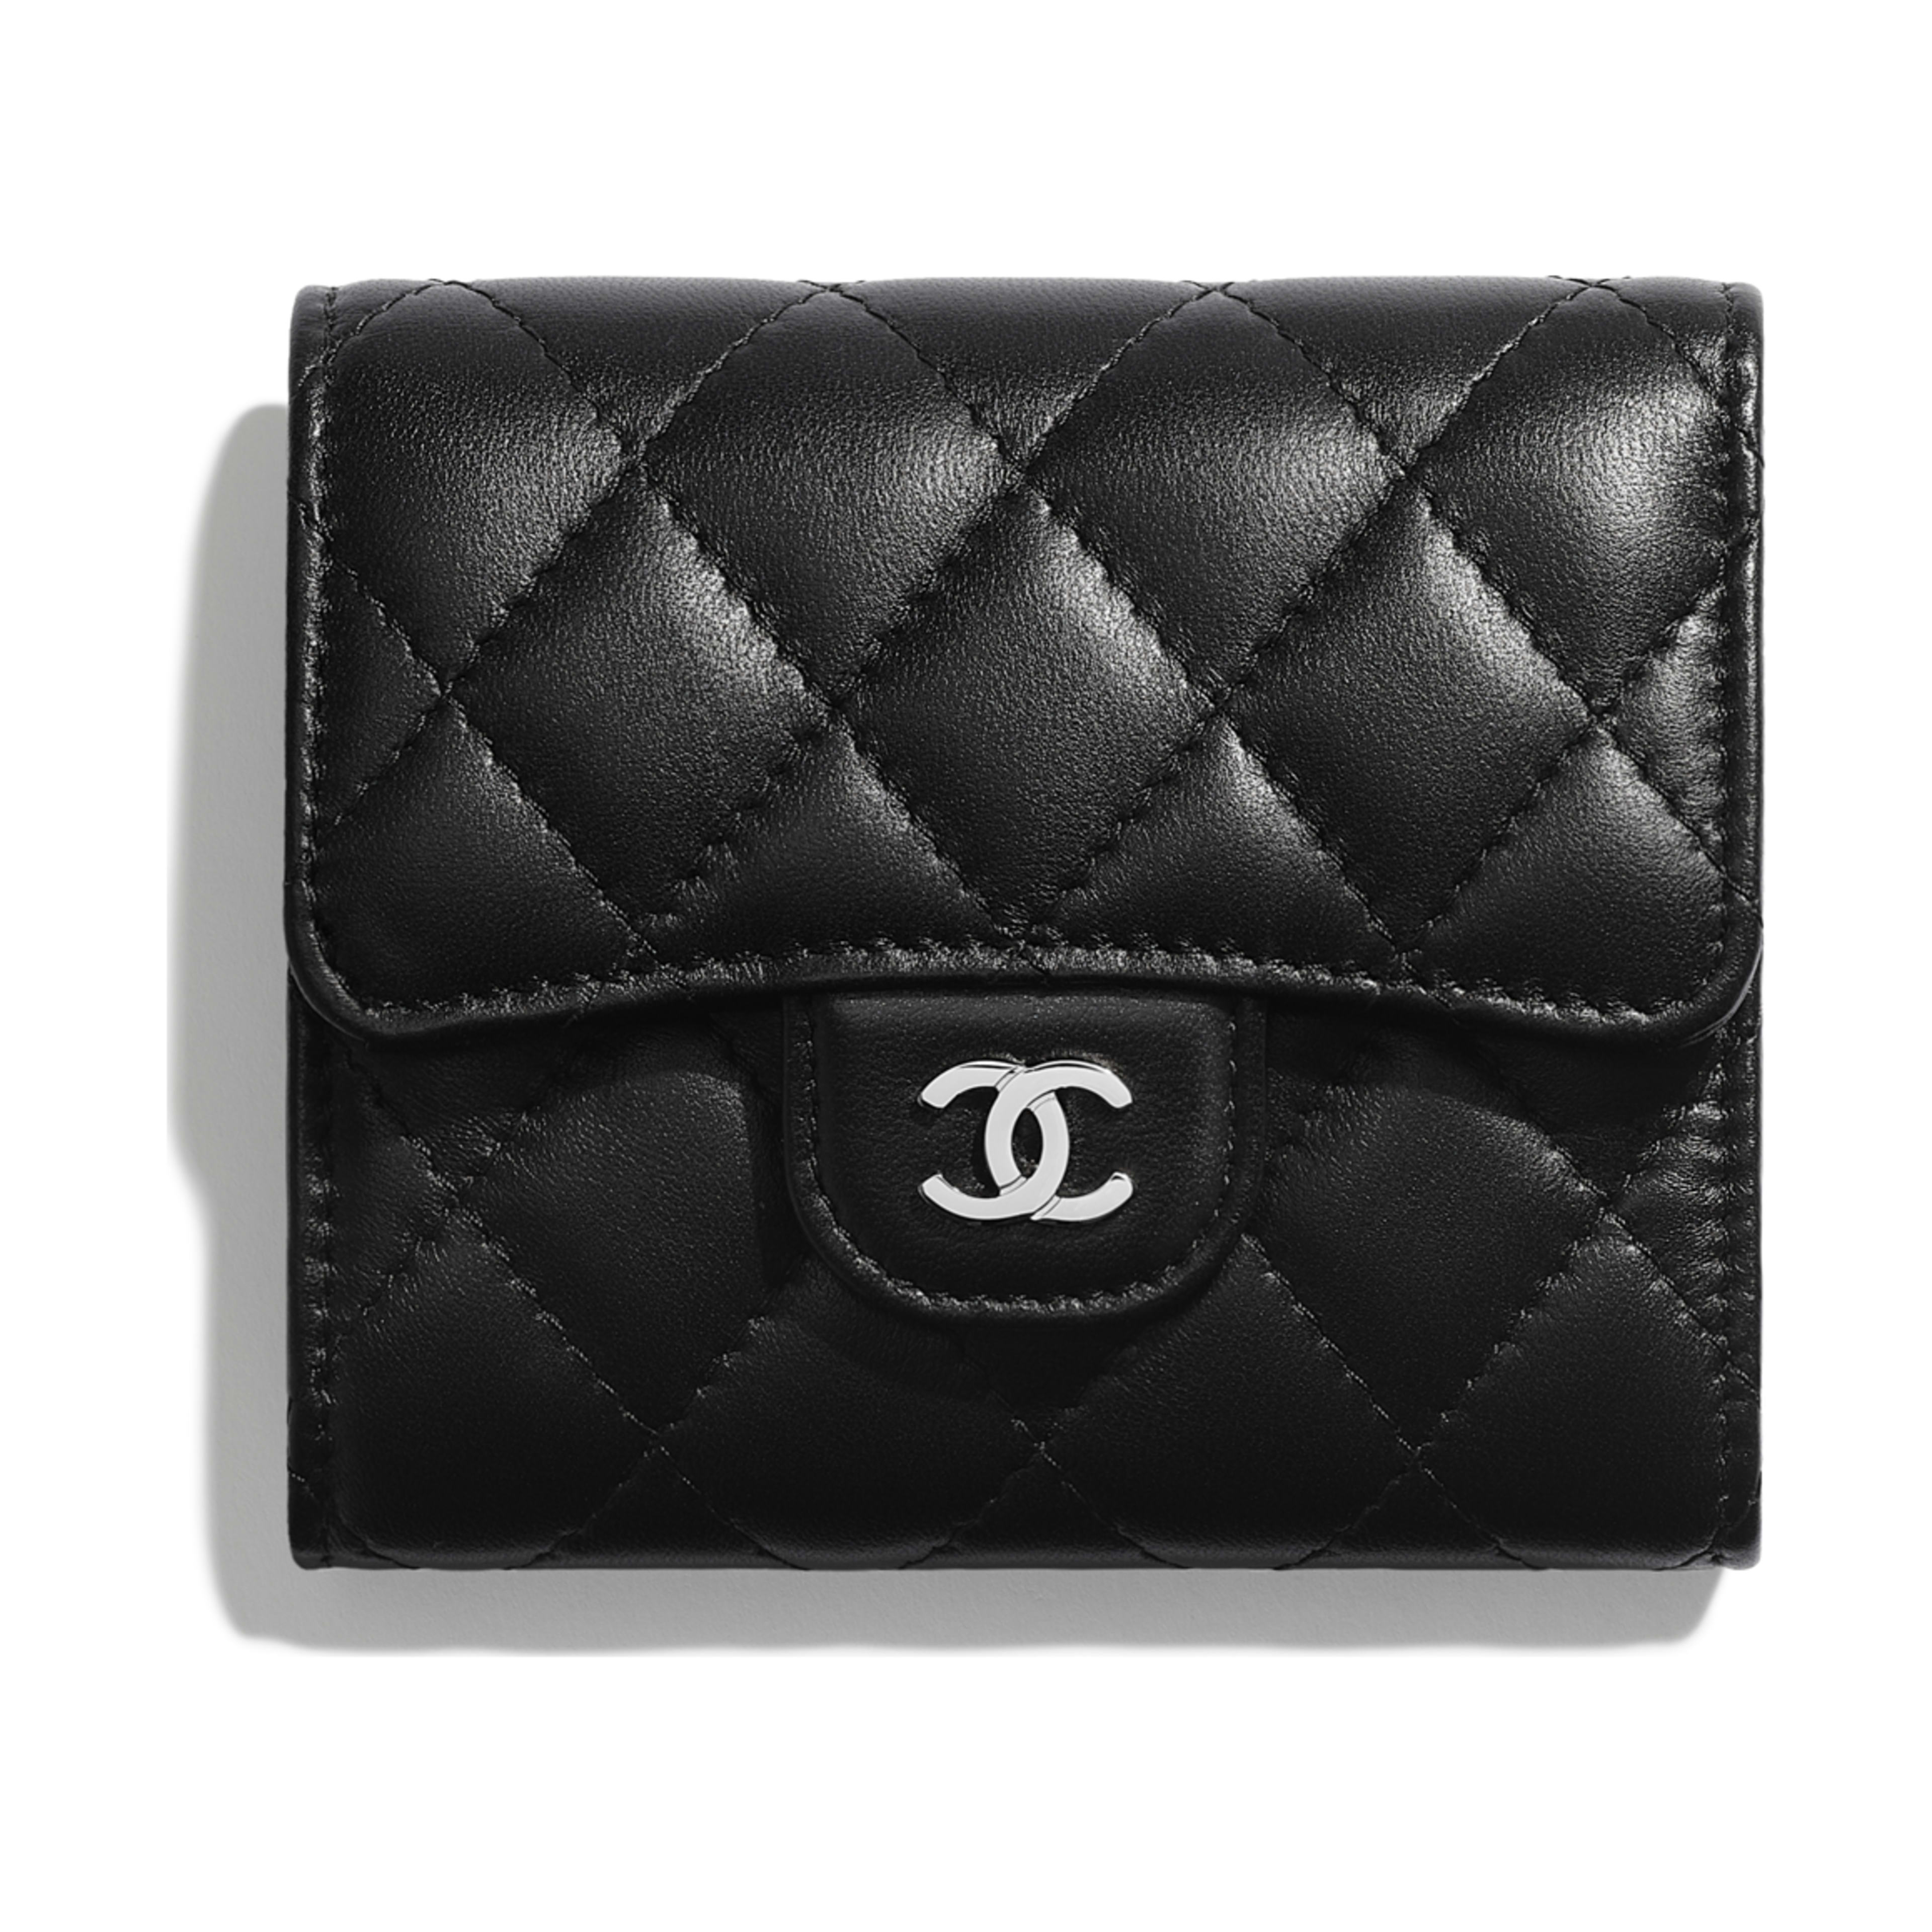 d5651d0be657 Chanel Classic Small Wallet Black | Stanford Center for Opportunity ...